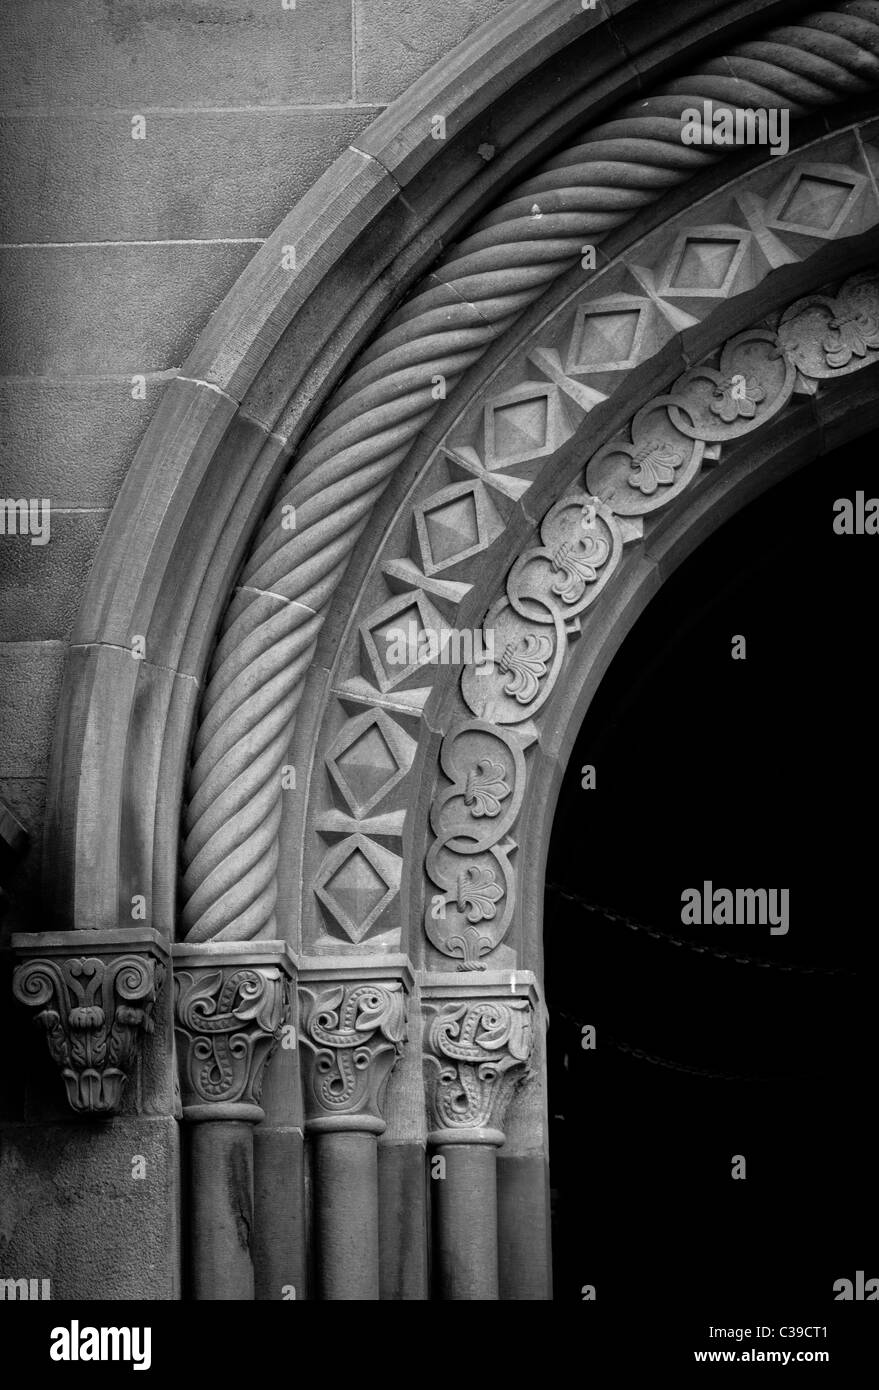 Architektonisches Detail aus dem Smithsonian Castle auf der National Mall in Washington, DC Stockbild